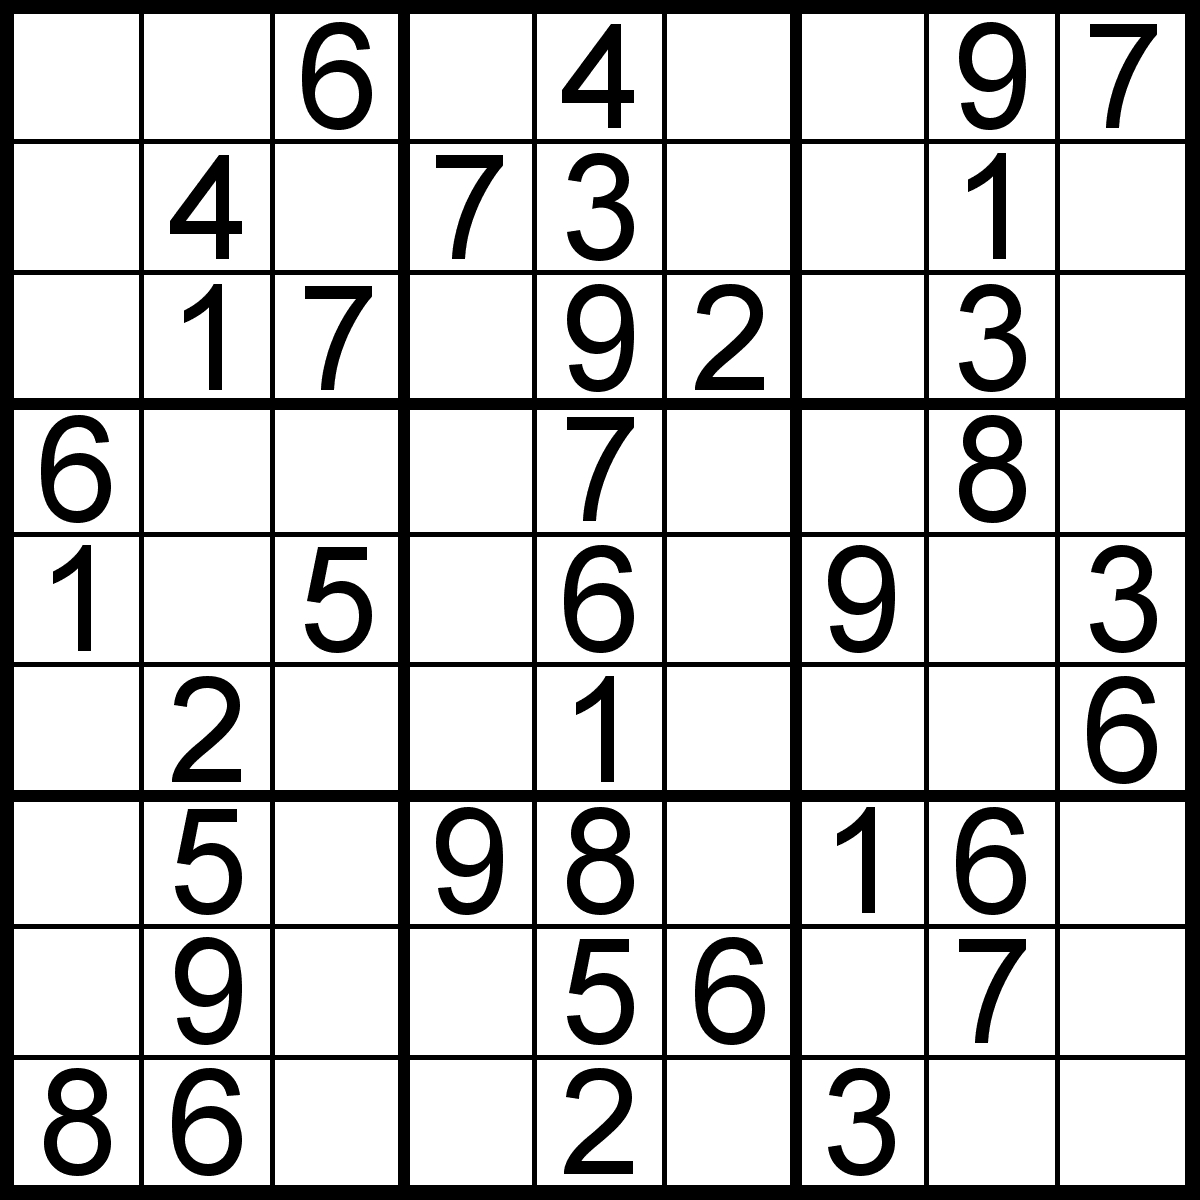 Easy Sudoku Puzzles Printable (96+ Images In Collection) Page 1 - Printable Sudoku Puzzles 99